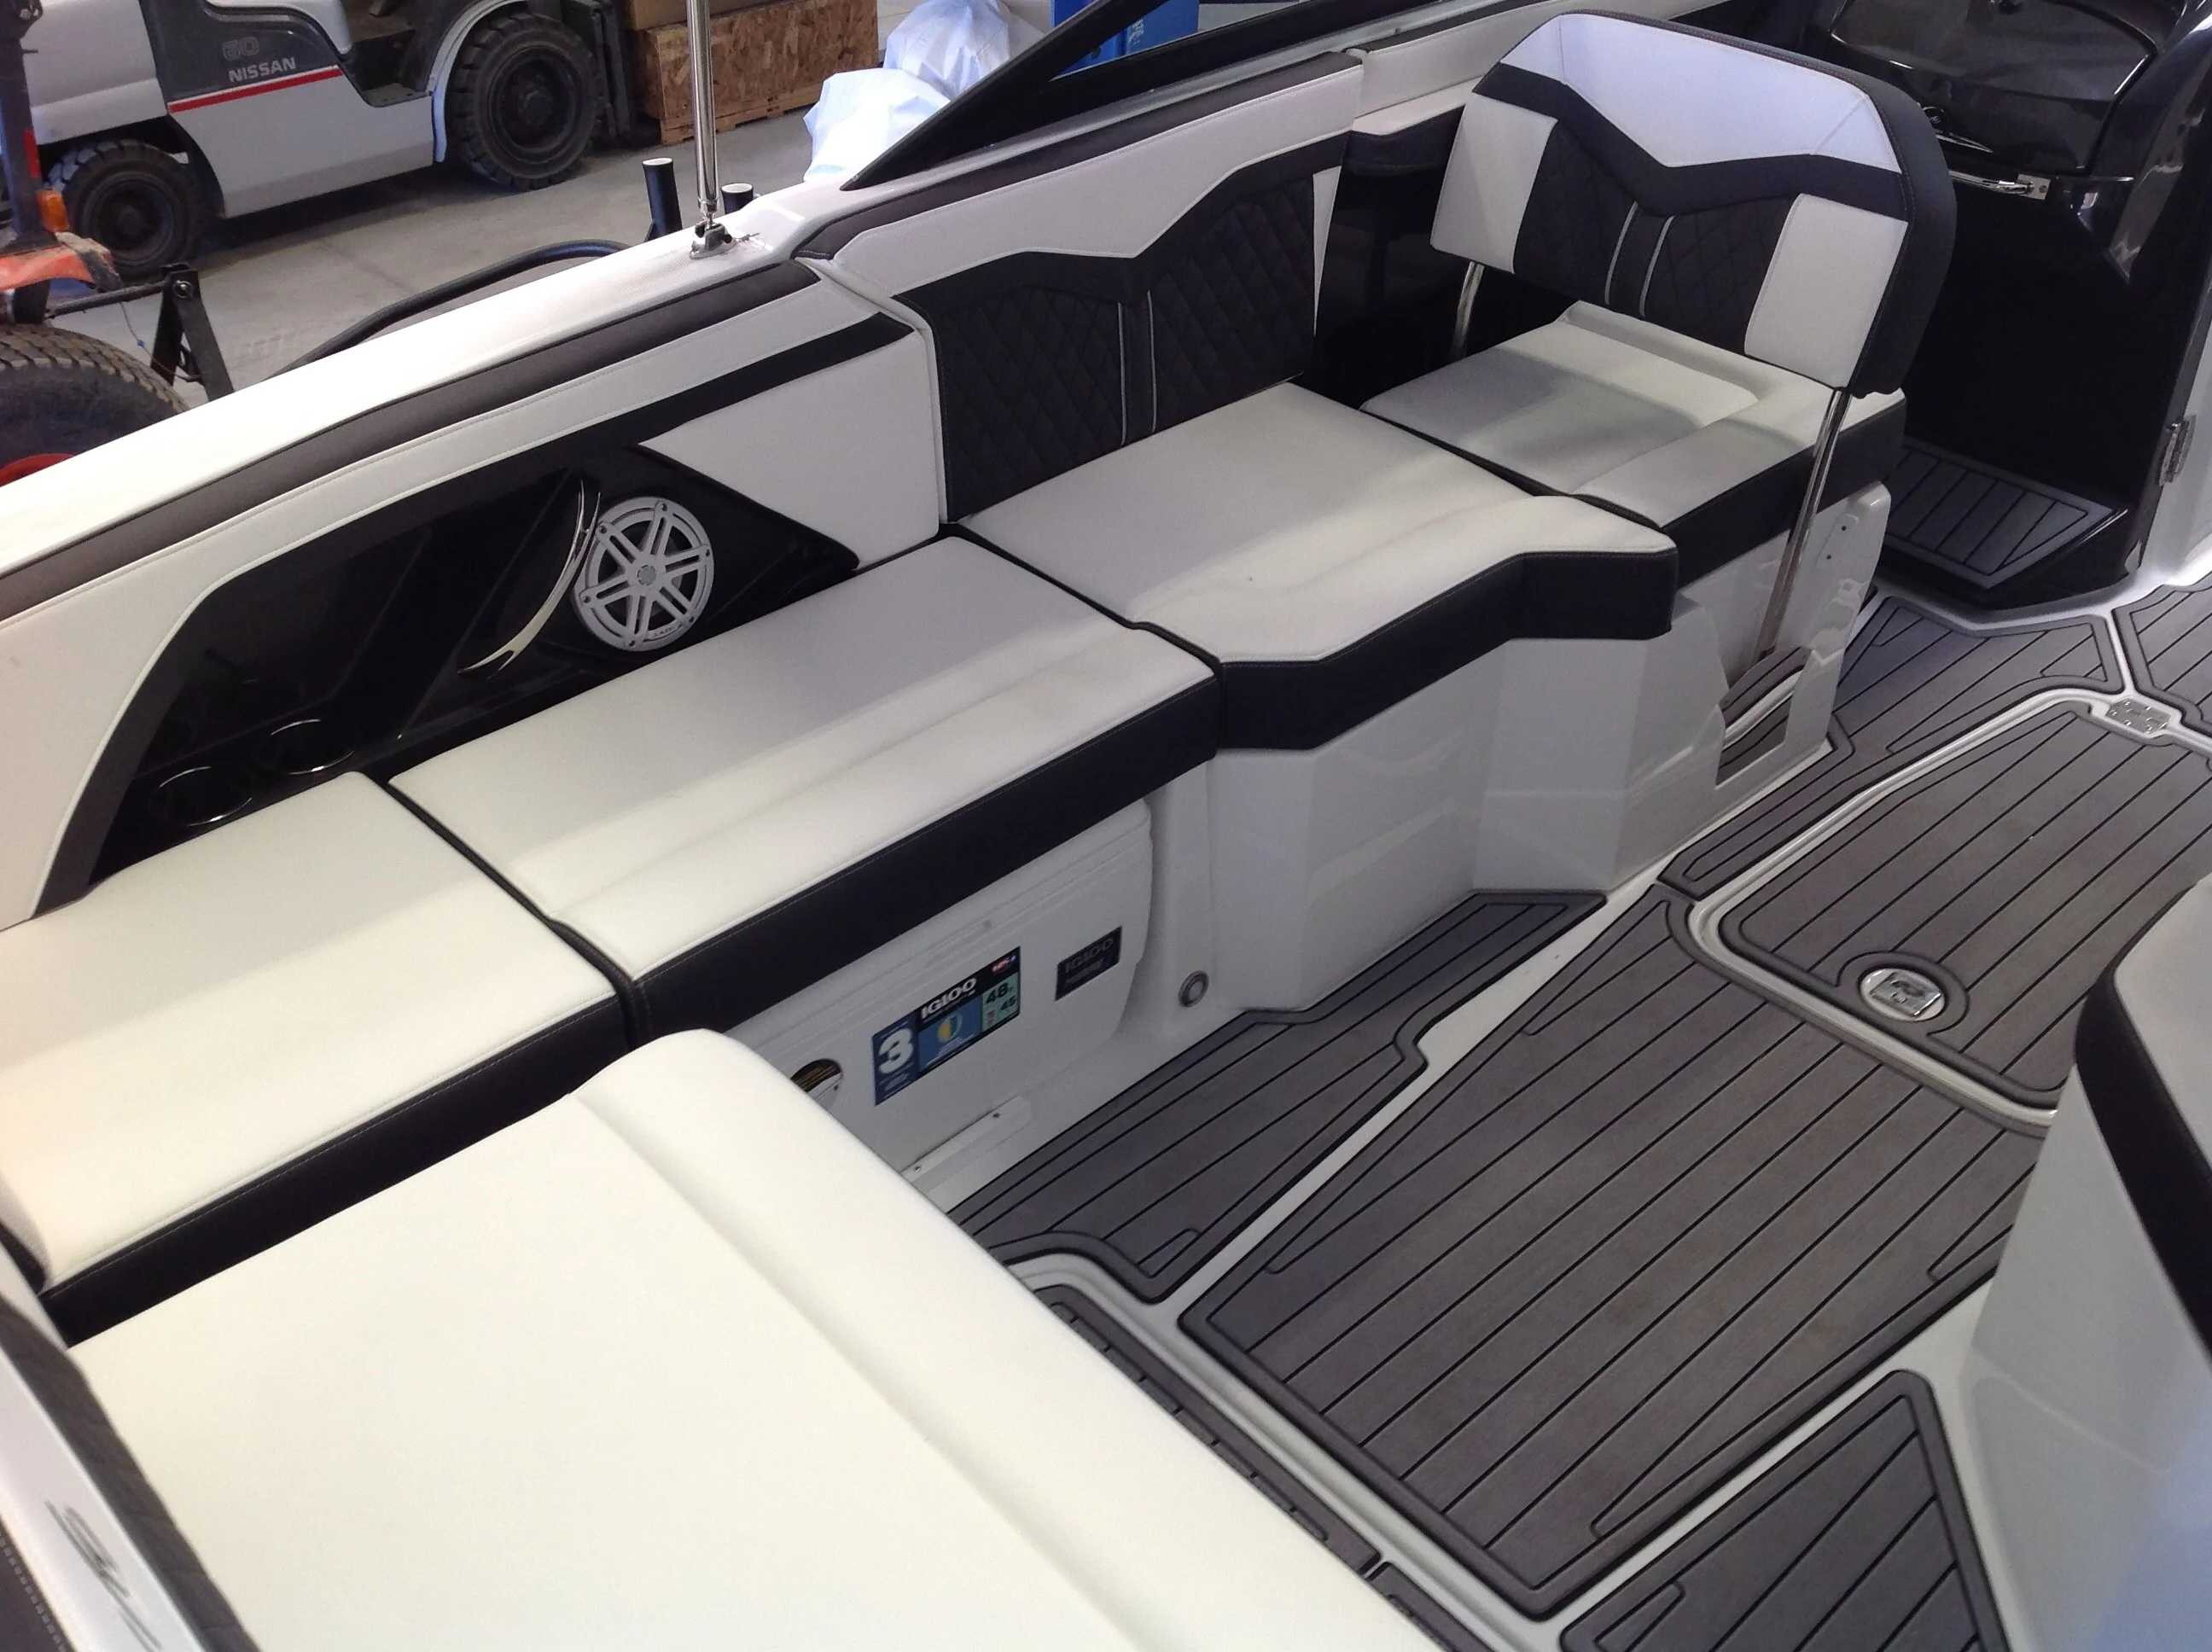 2022 Monterey boat for sale, model of the boat is 258SS & Image # 11 of 18